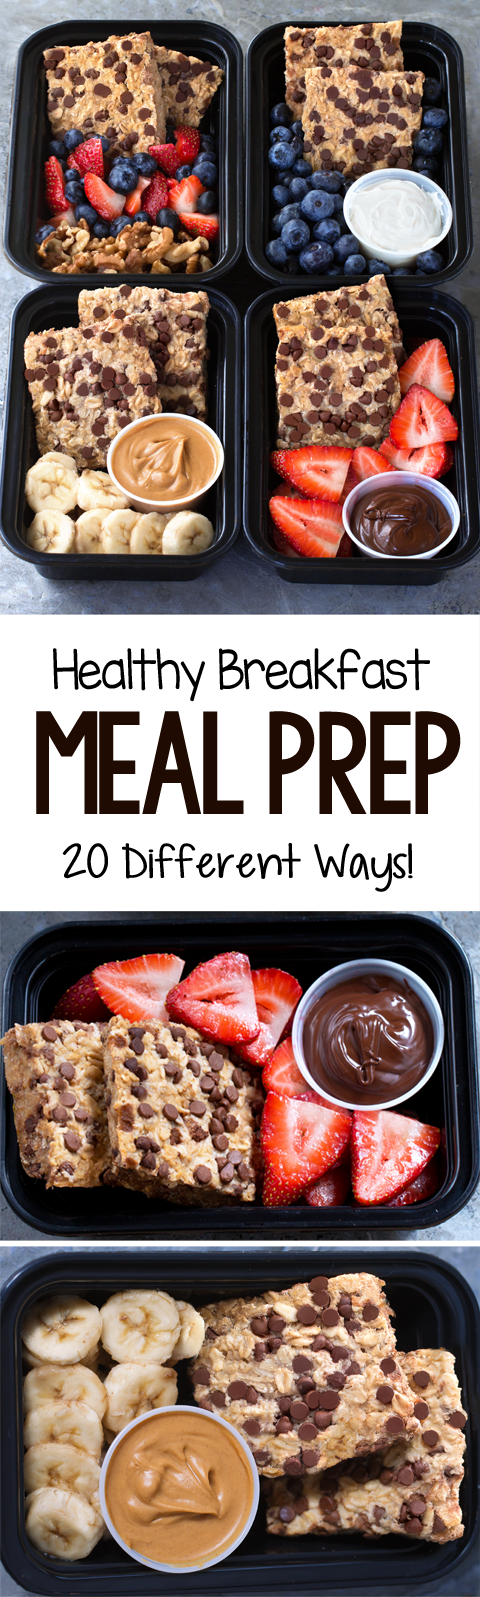 20 Super Healthy Breakfast Meal Prep Ideas - Easy Recipes